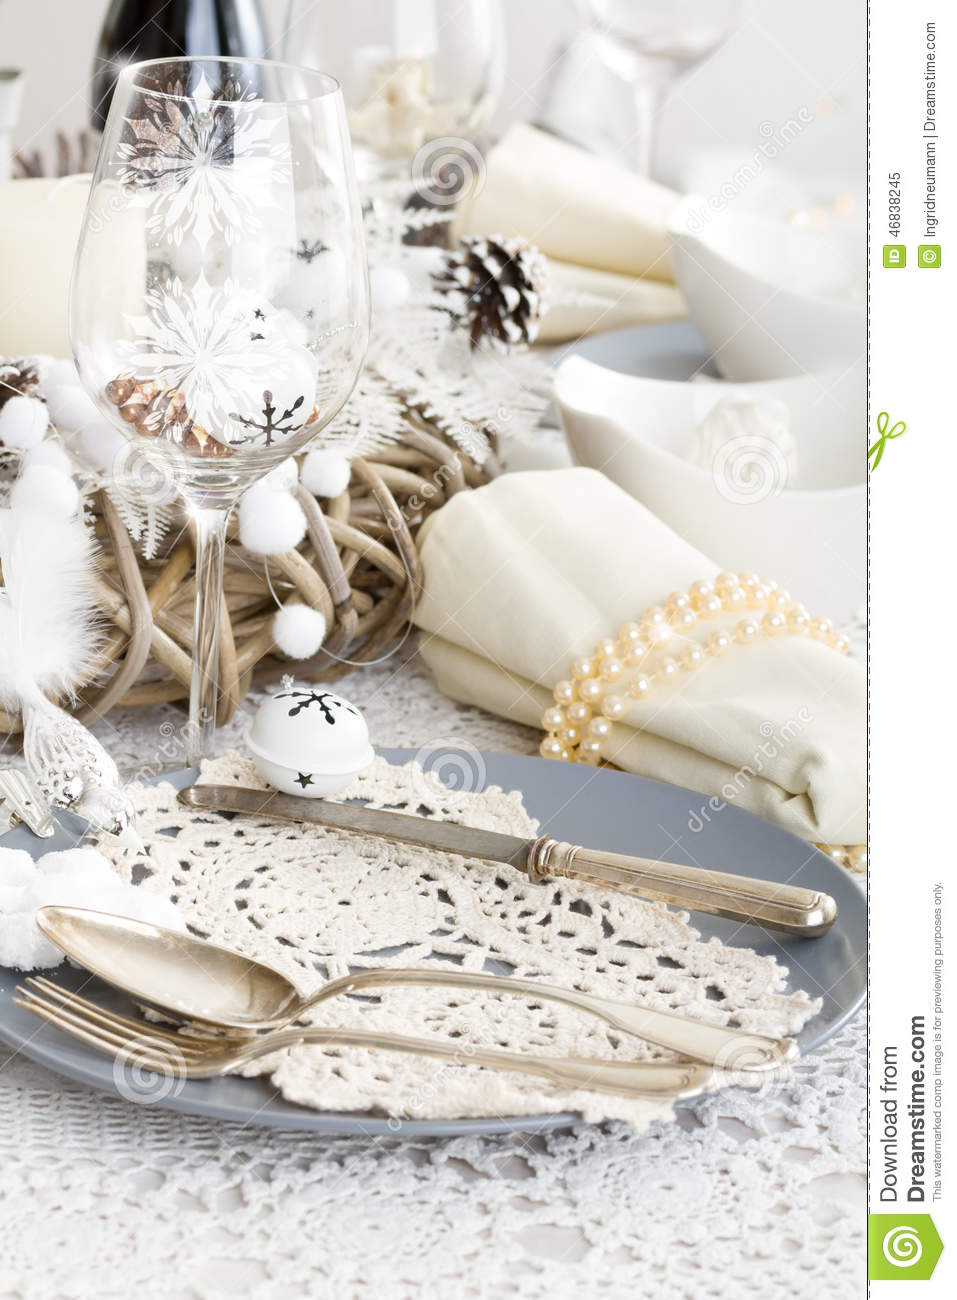 Christmas Table Setting With Traditional Holiday Decorations Stock ...